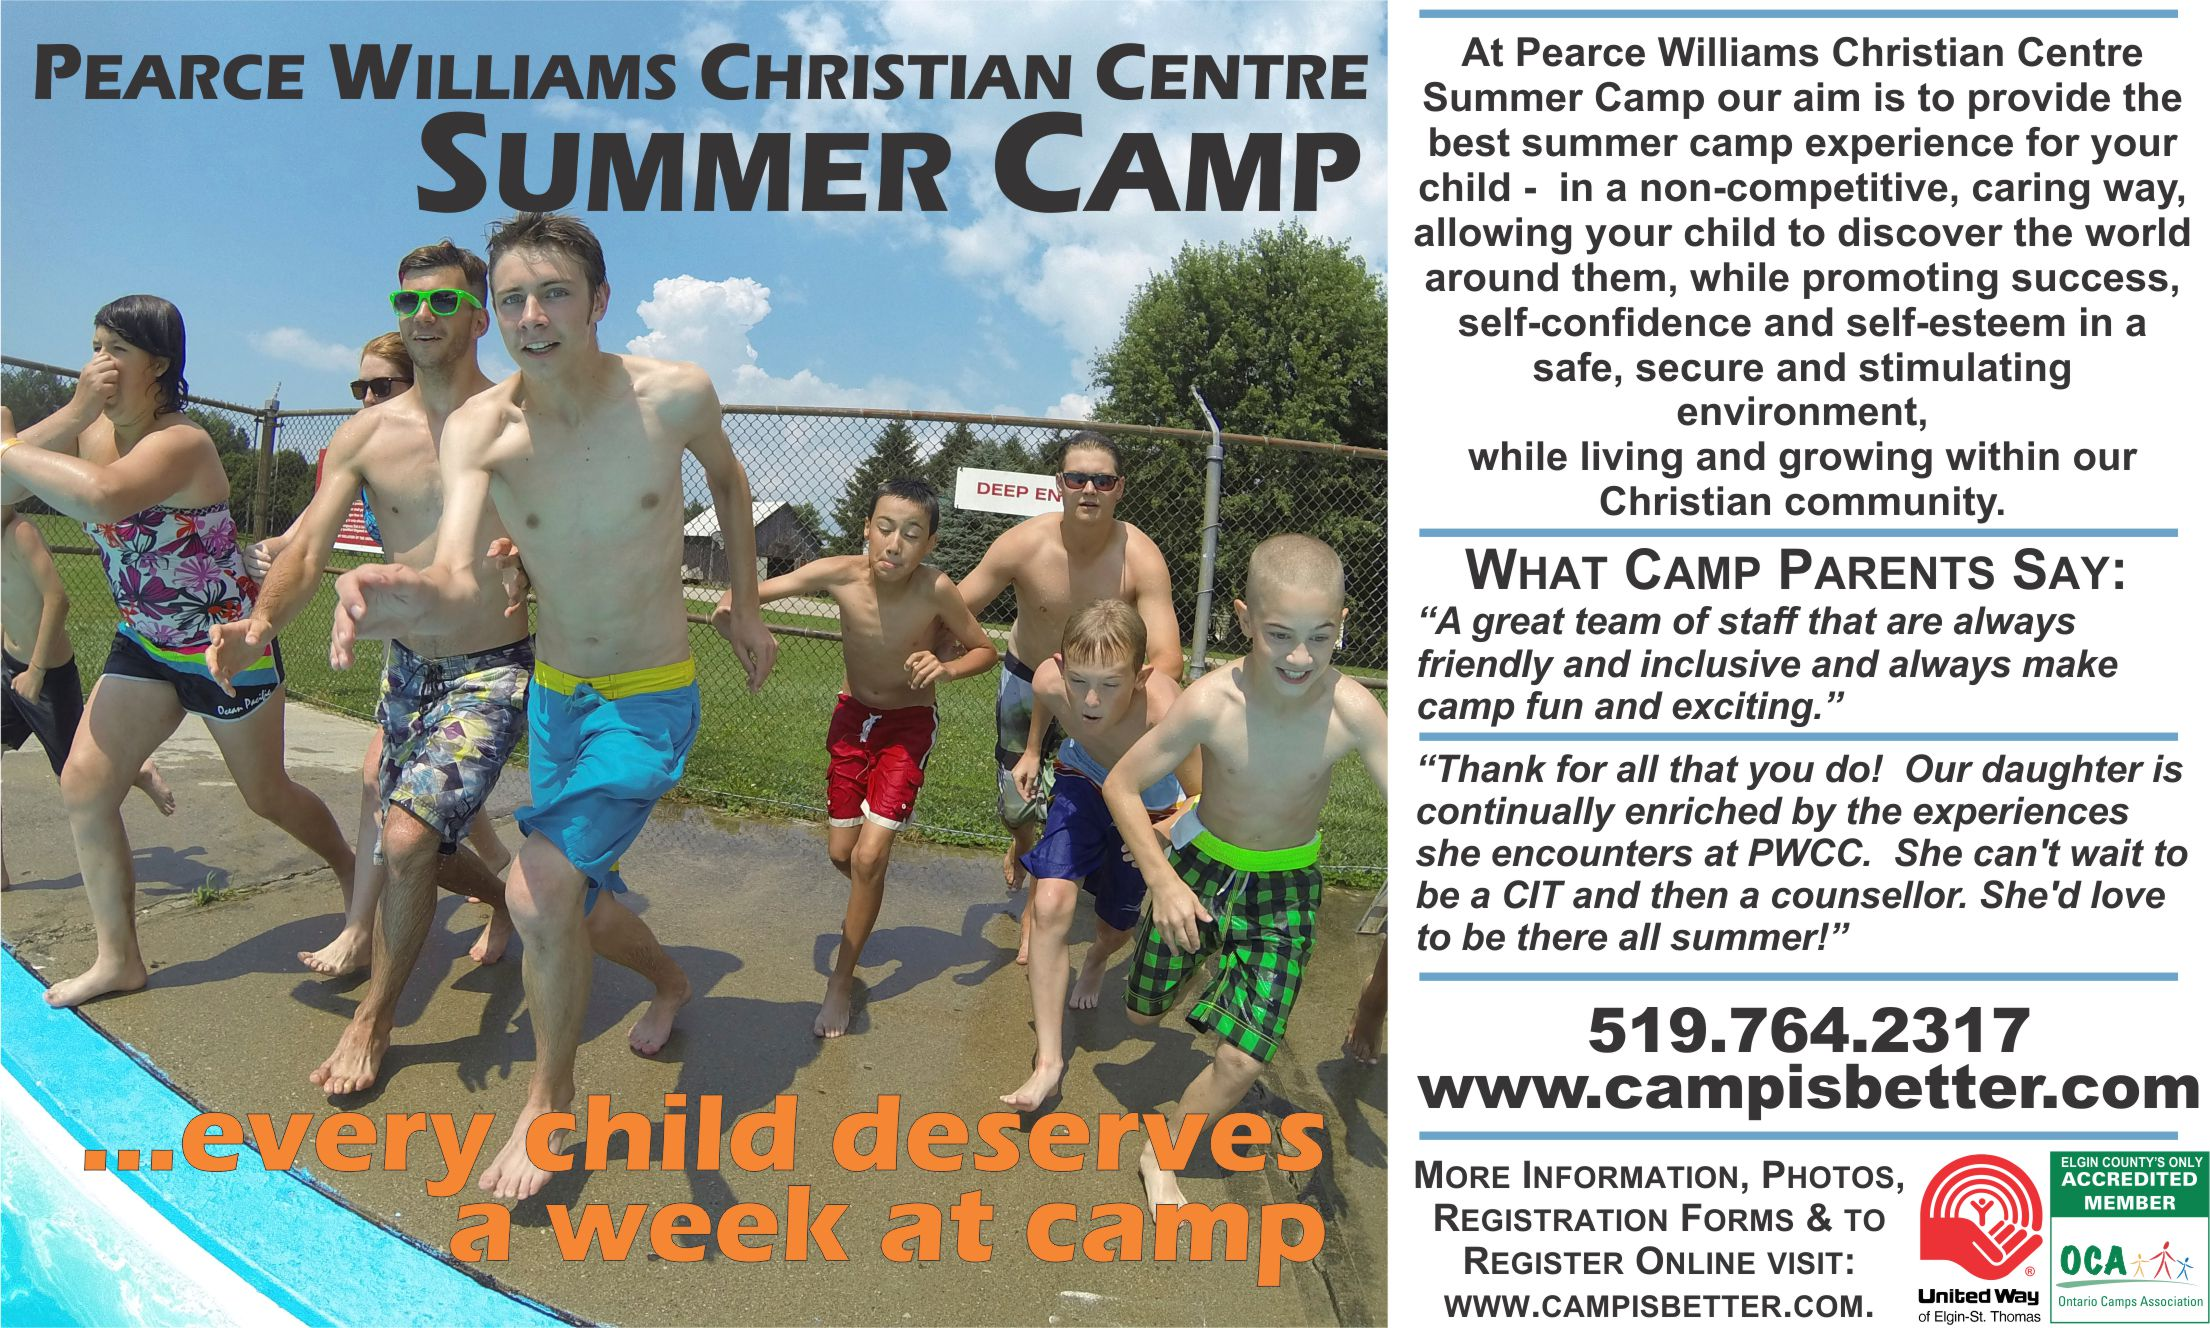 Active Elgin 2014 Pearce Williams Christian Centre Ad.